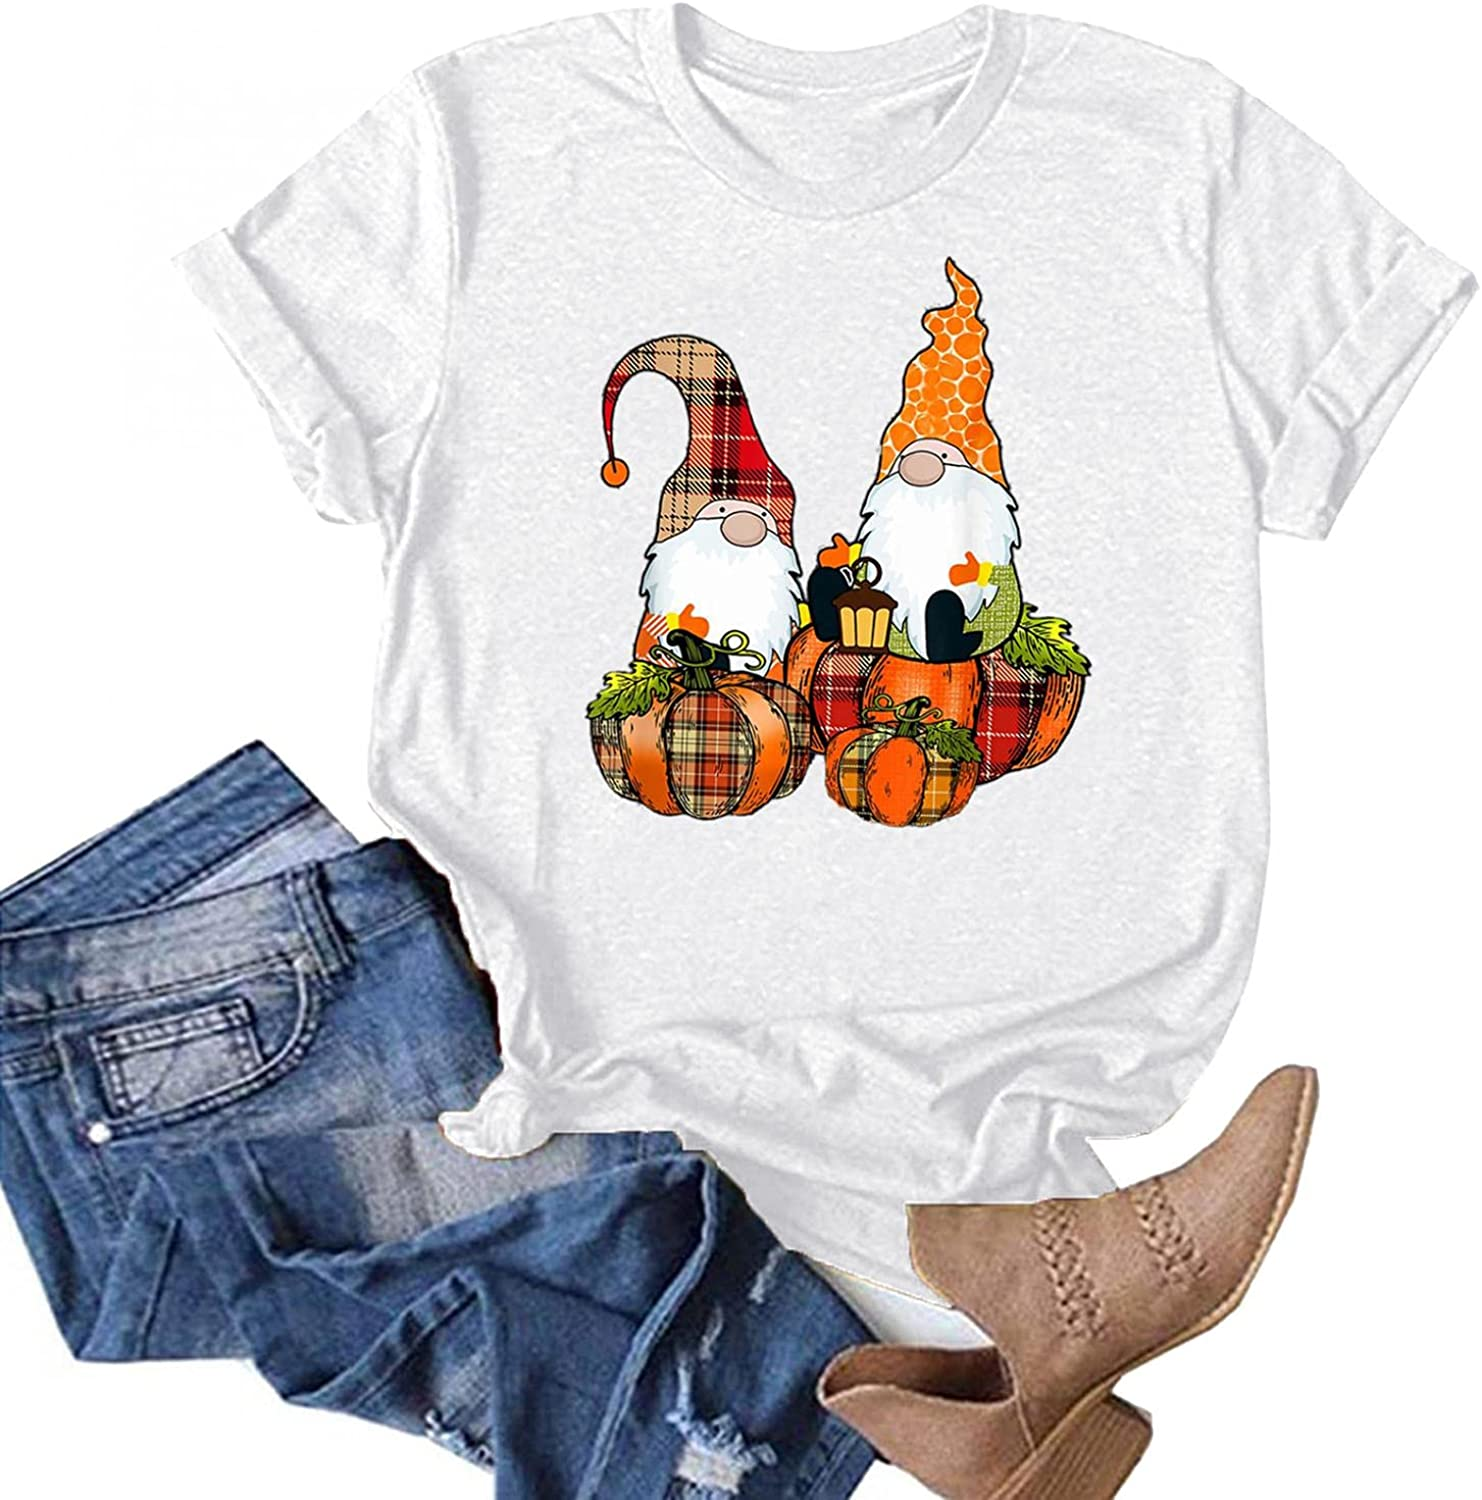 AODONG Halloween Sweatshirts for Women Prime Summer Tops for Women Casual Short Sleeves Halloween Pumpkin Gnomes Graphic T-Shirts Blouse Tops